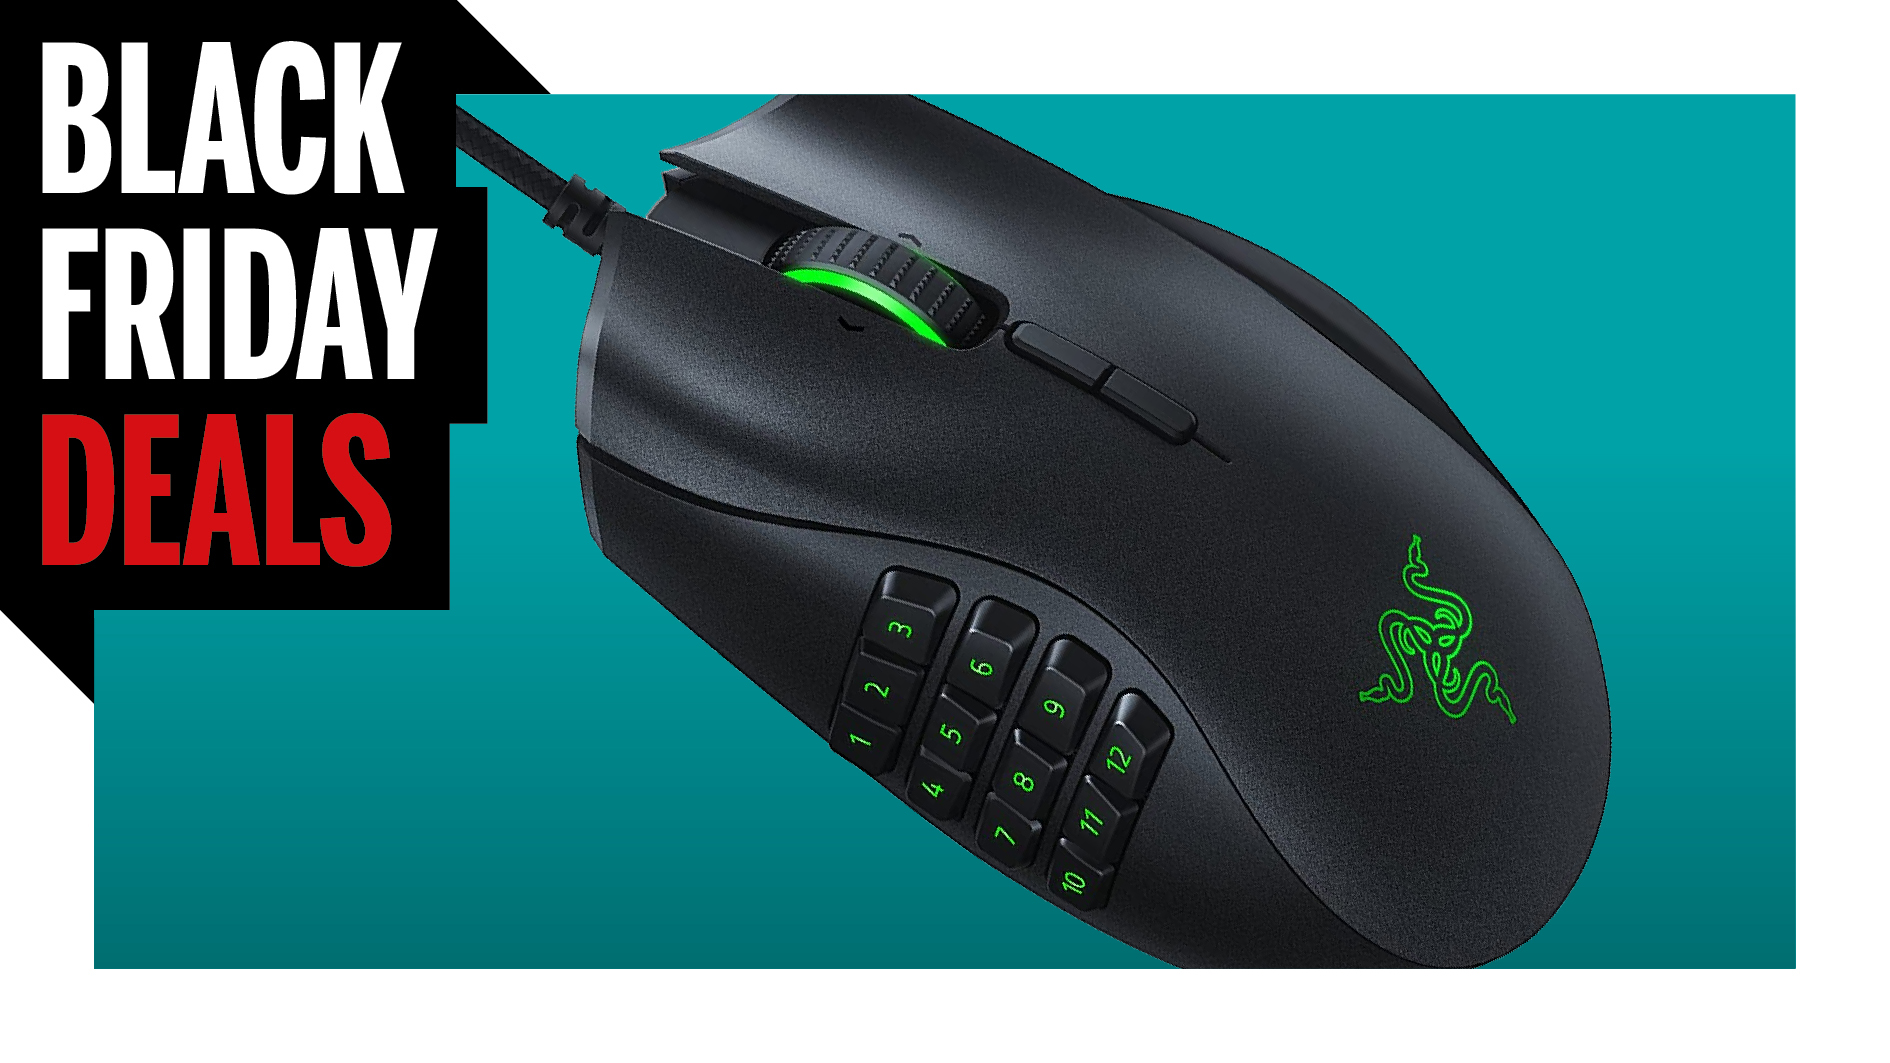 Black Friday mouse and keyboard deals: the best PC gaming input devices